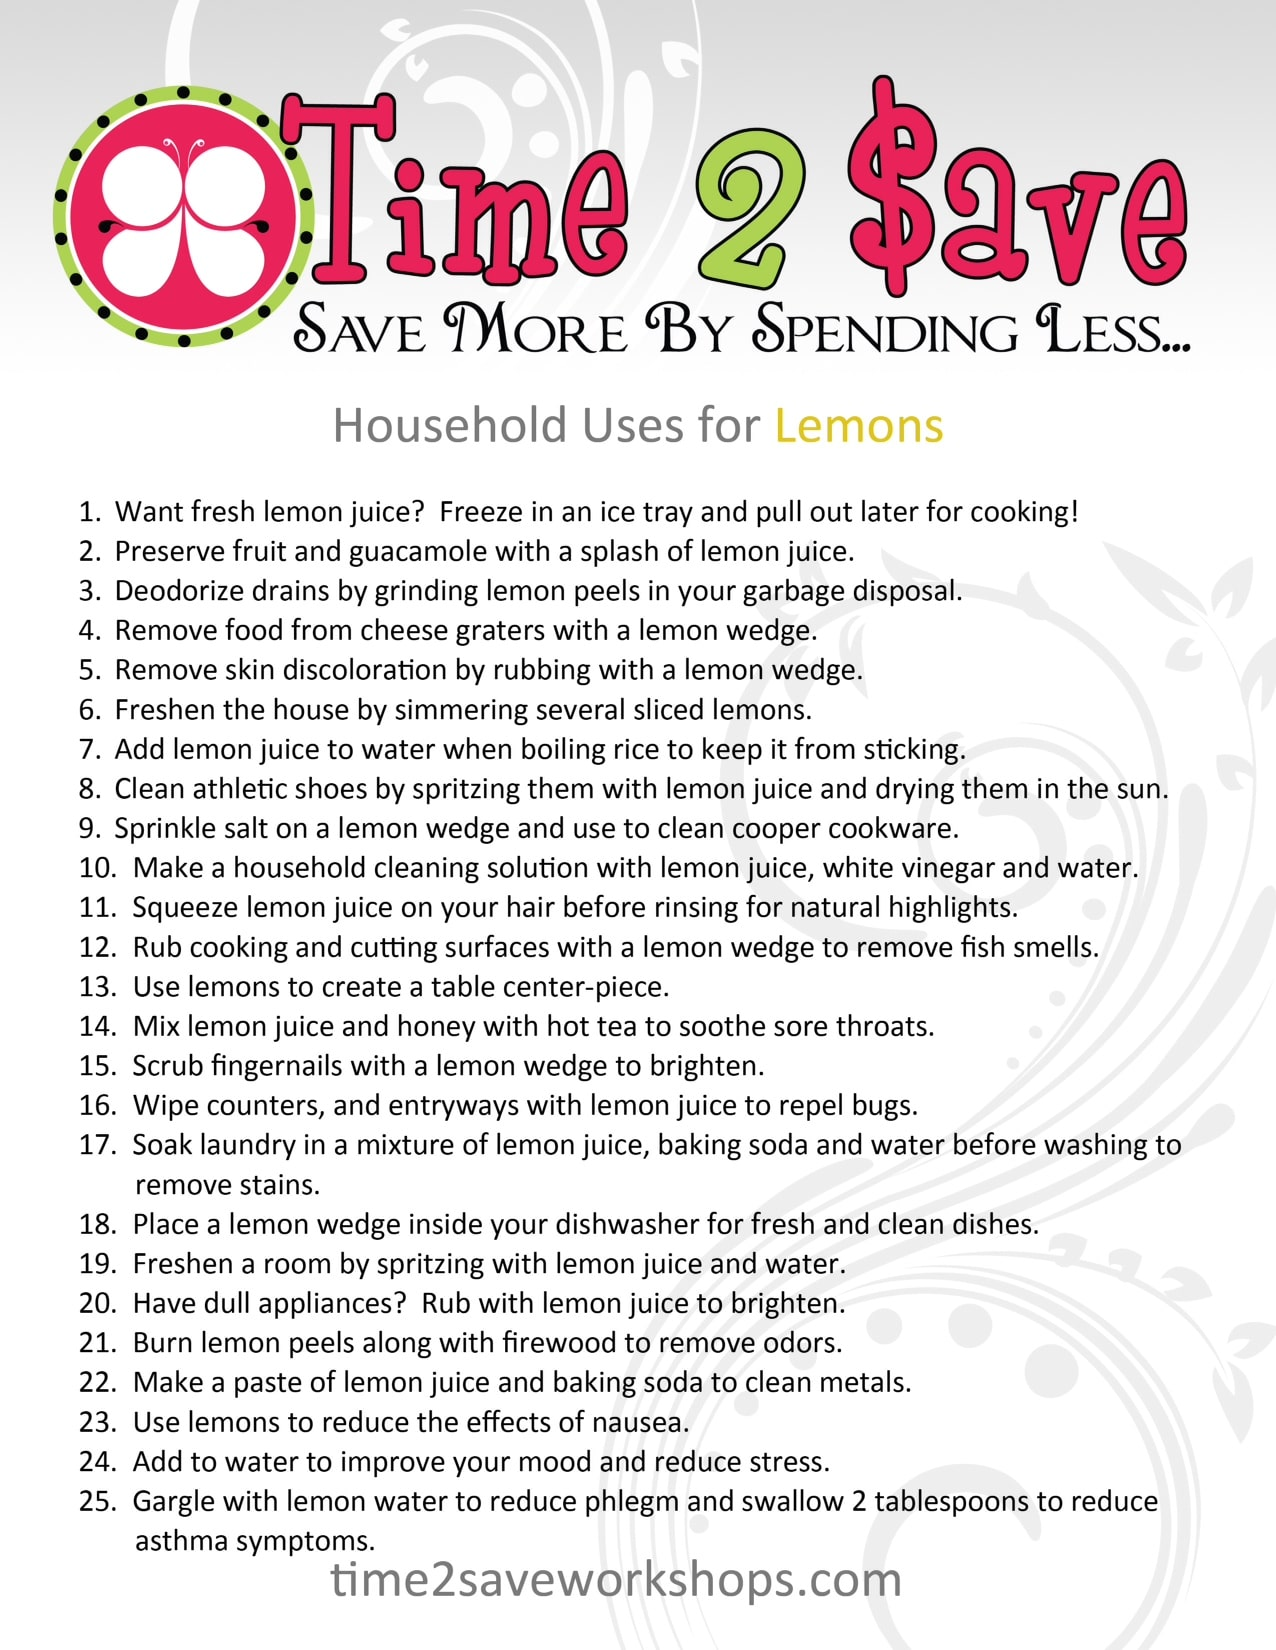 uses-for-lemons